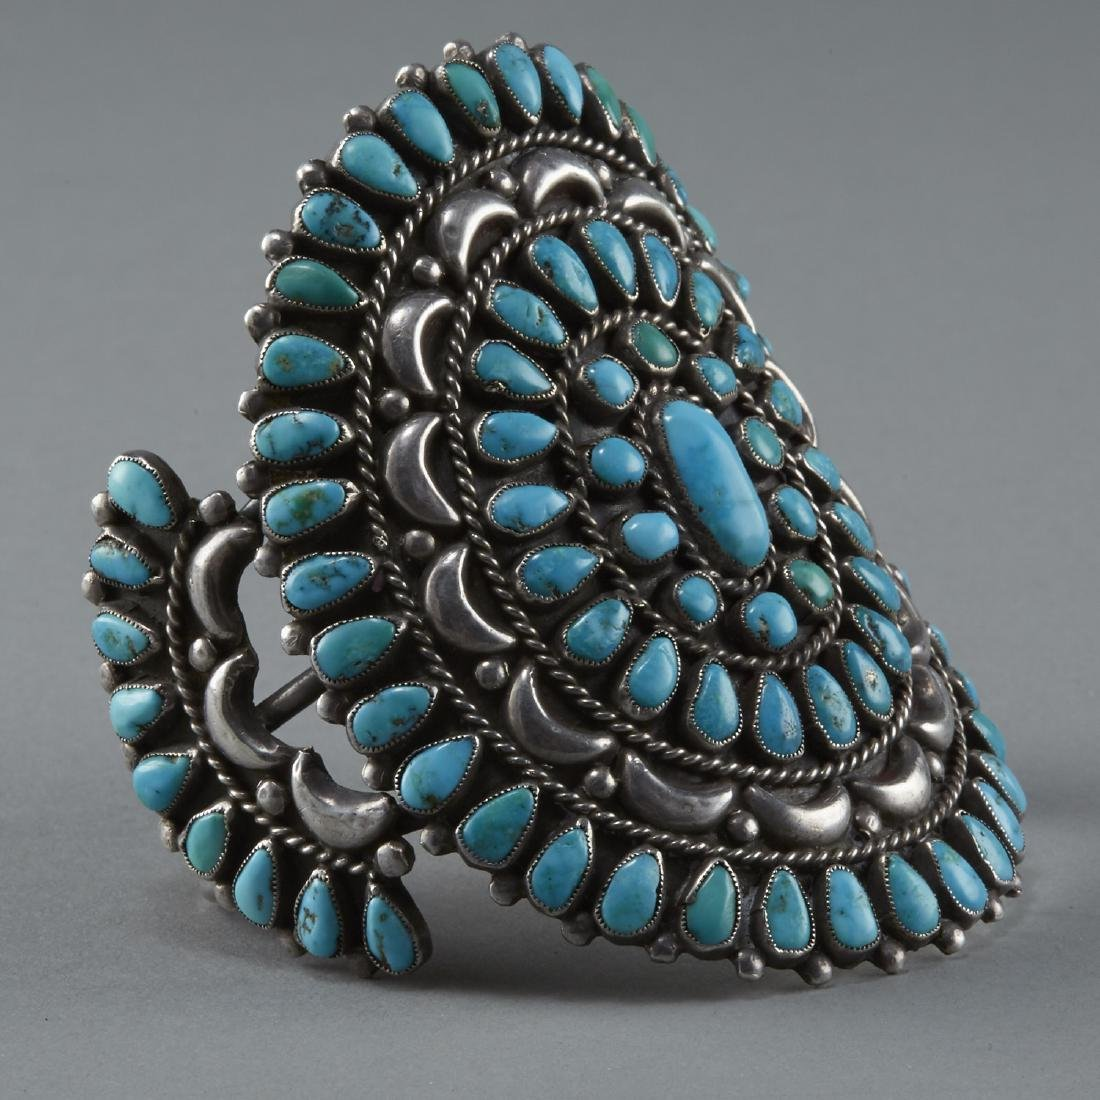 Southwestern Silver and Turquoise Cuff Bracelet - 3